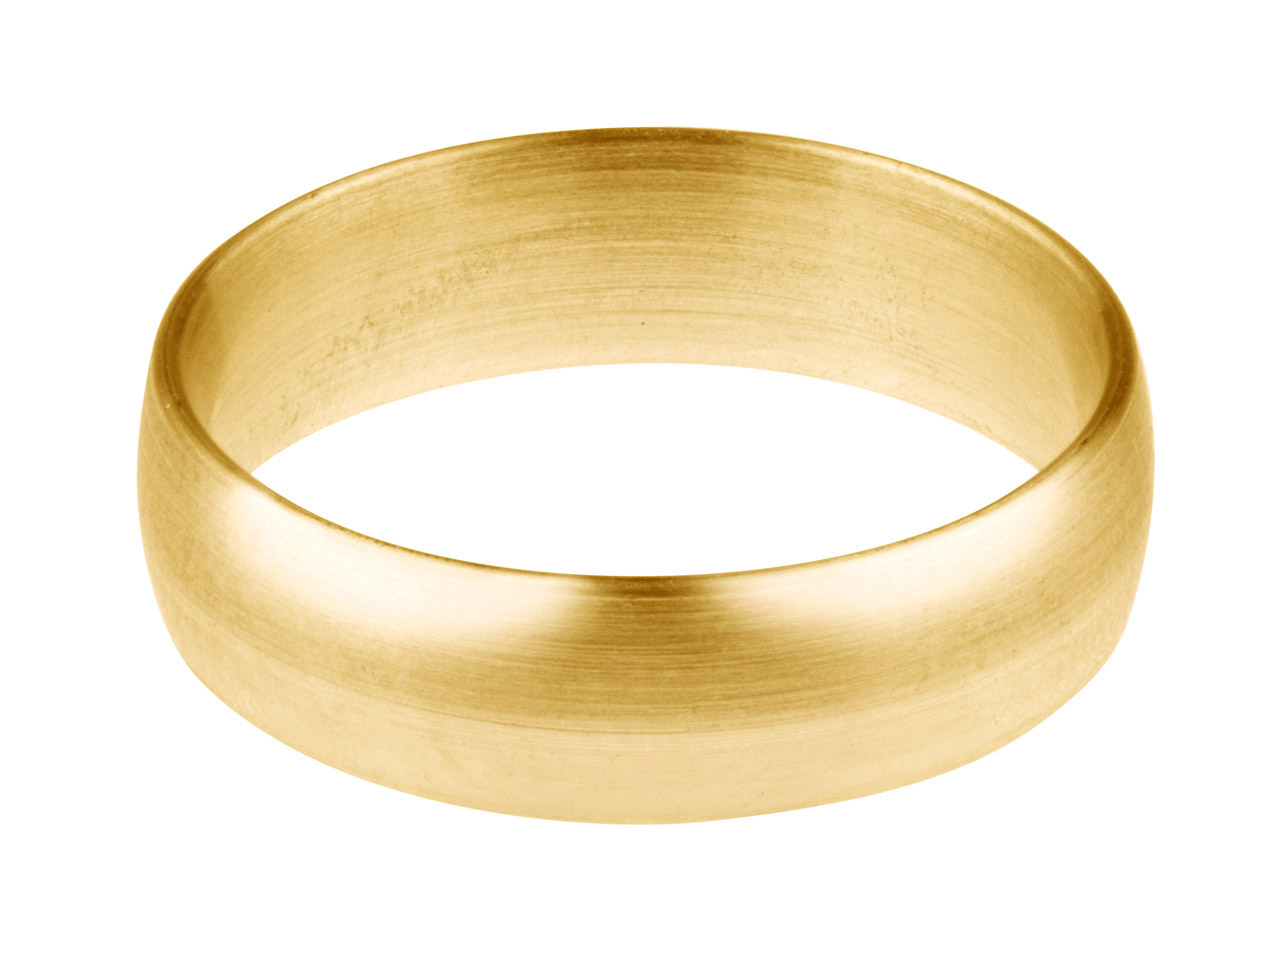 9ct Yellow Gold Blended Court      Wedding Ring 5.0mm, Size T, 1.3mm  Wall, Hallmarked, Wall Thickness   1.30mm, 100% Recycled Gold